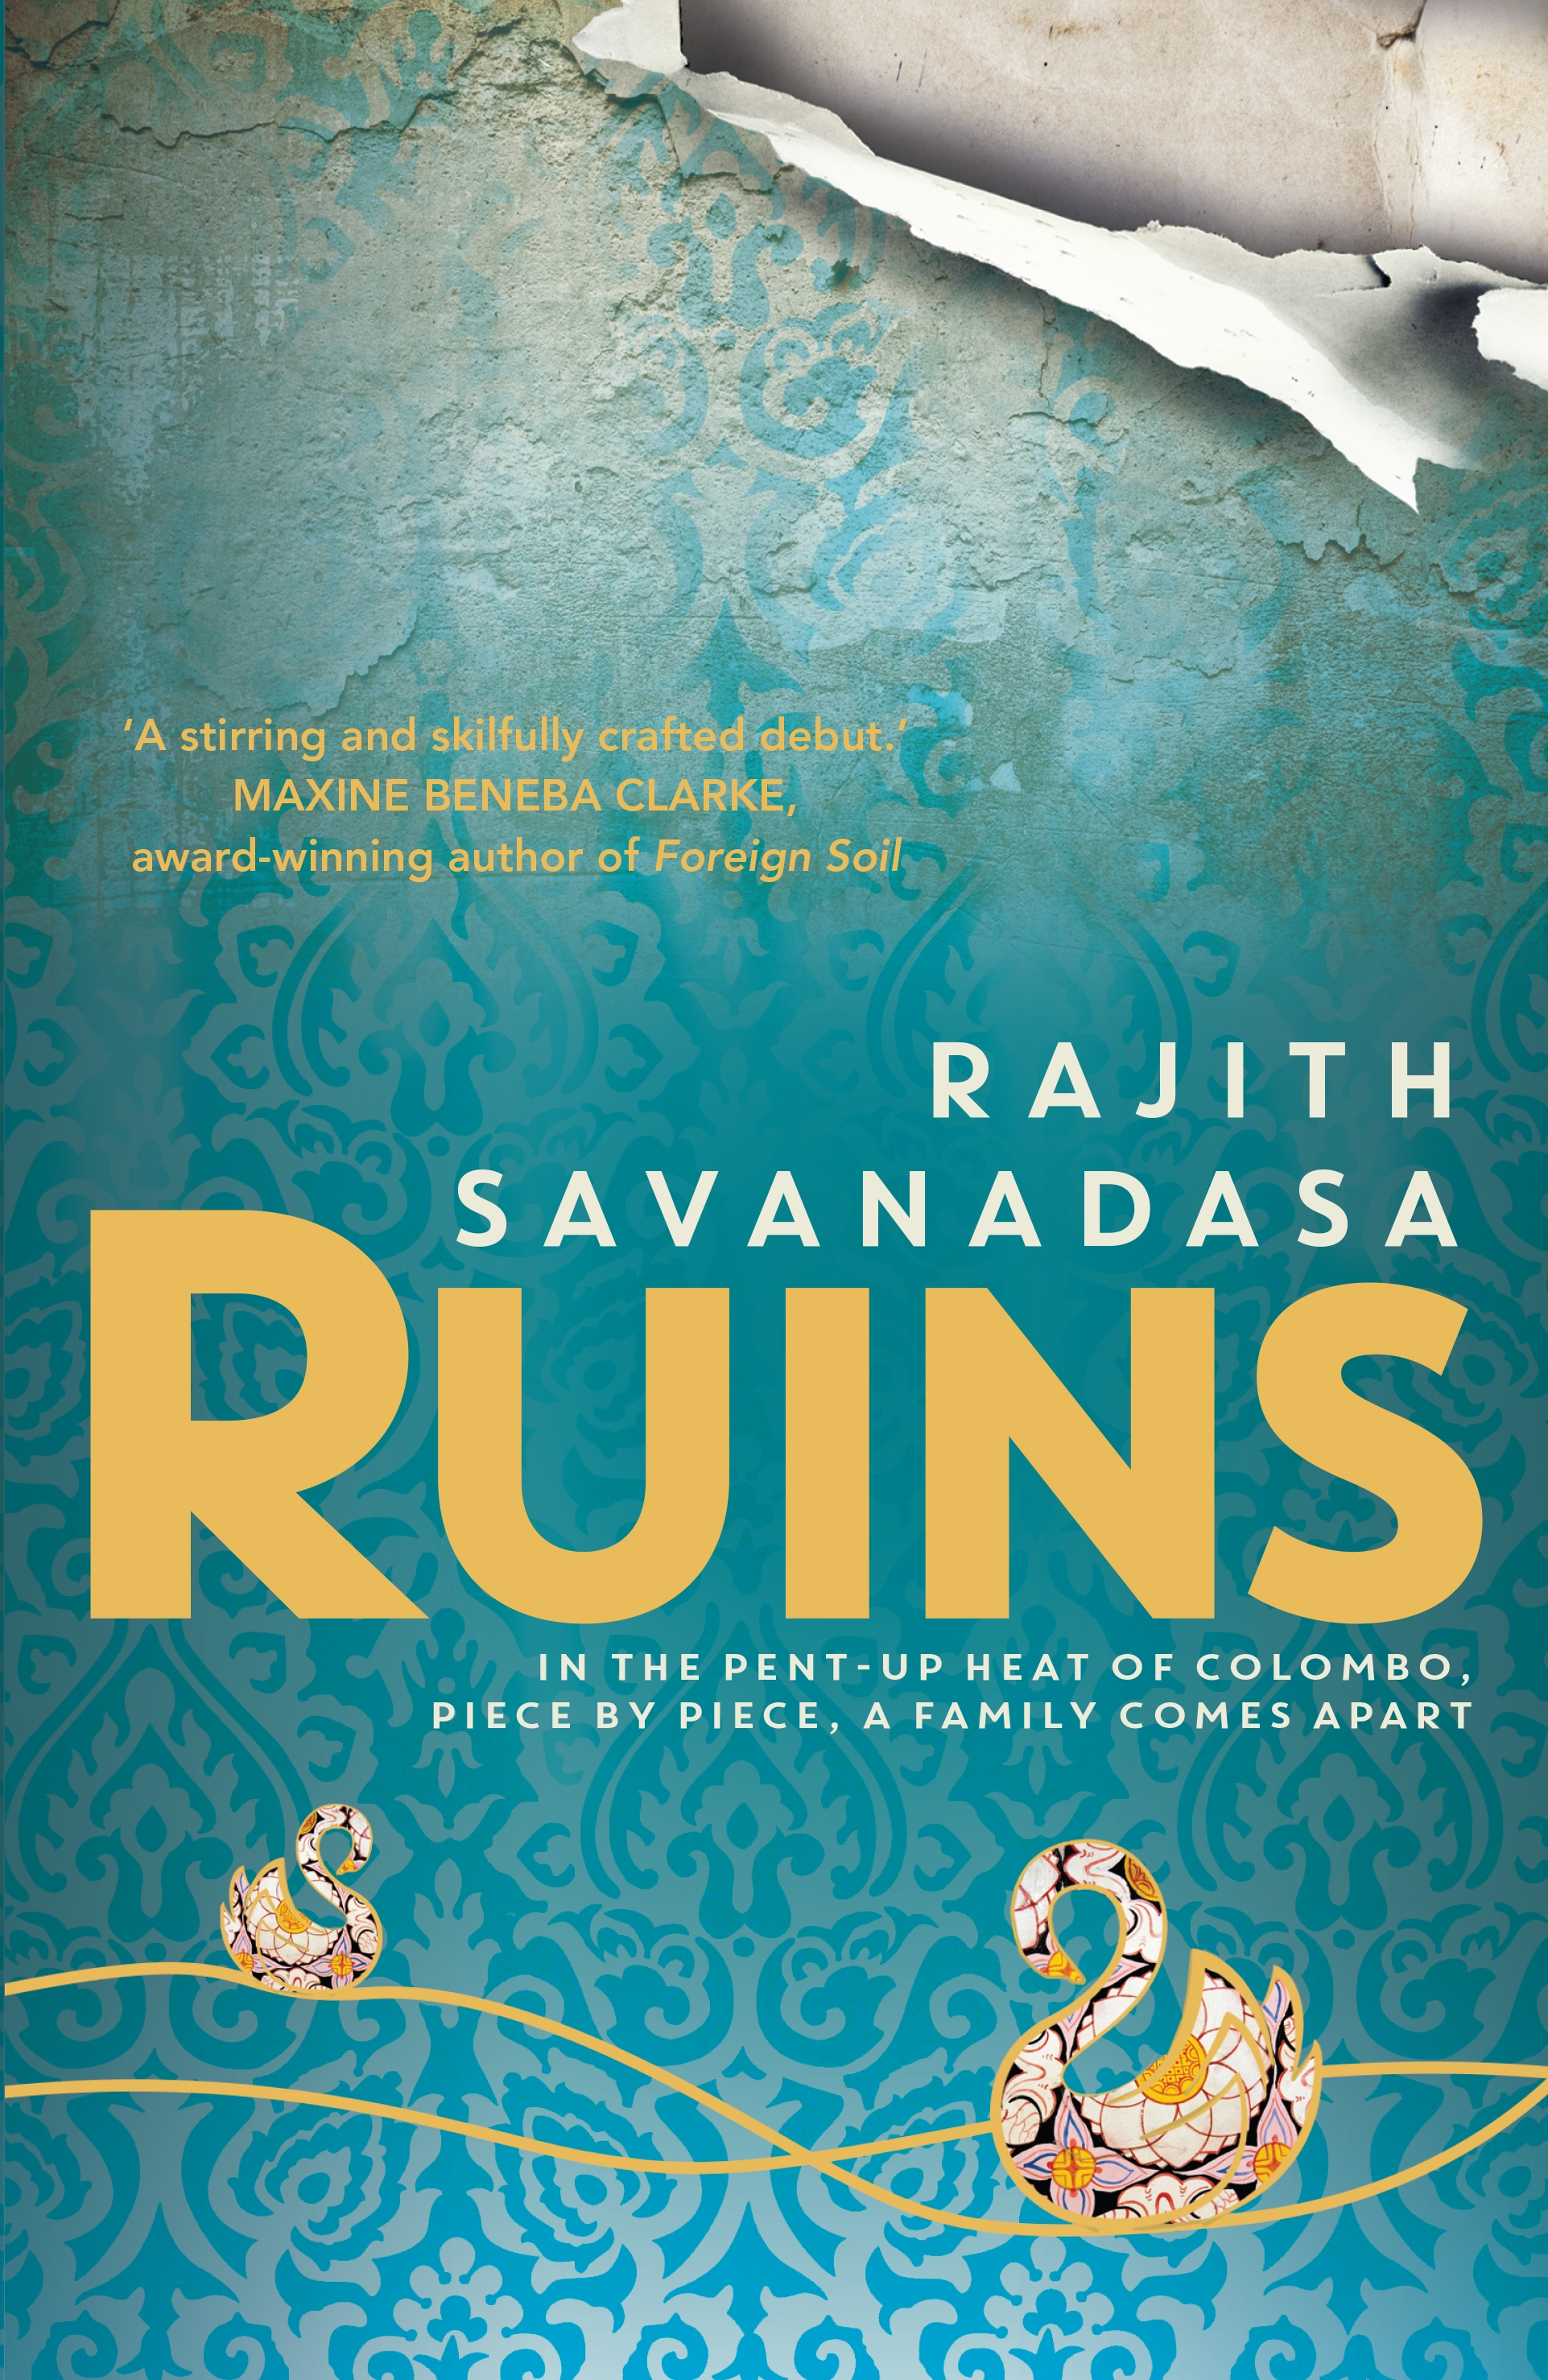 Ruins, a novel by Rajith Savanadasa